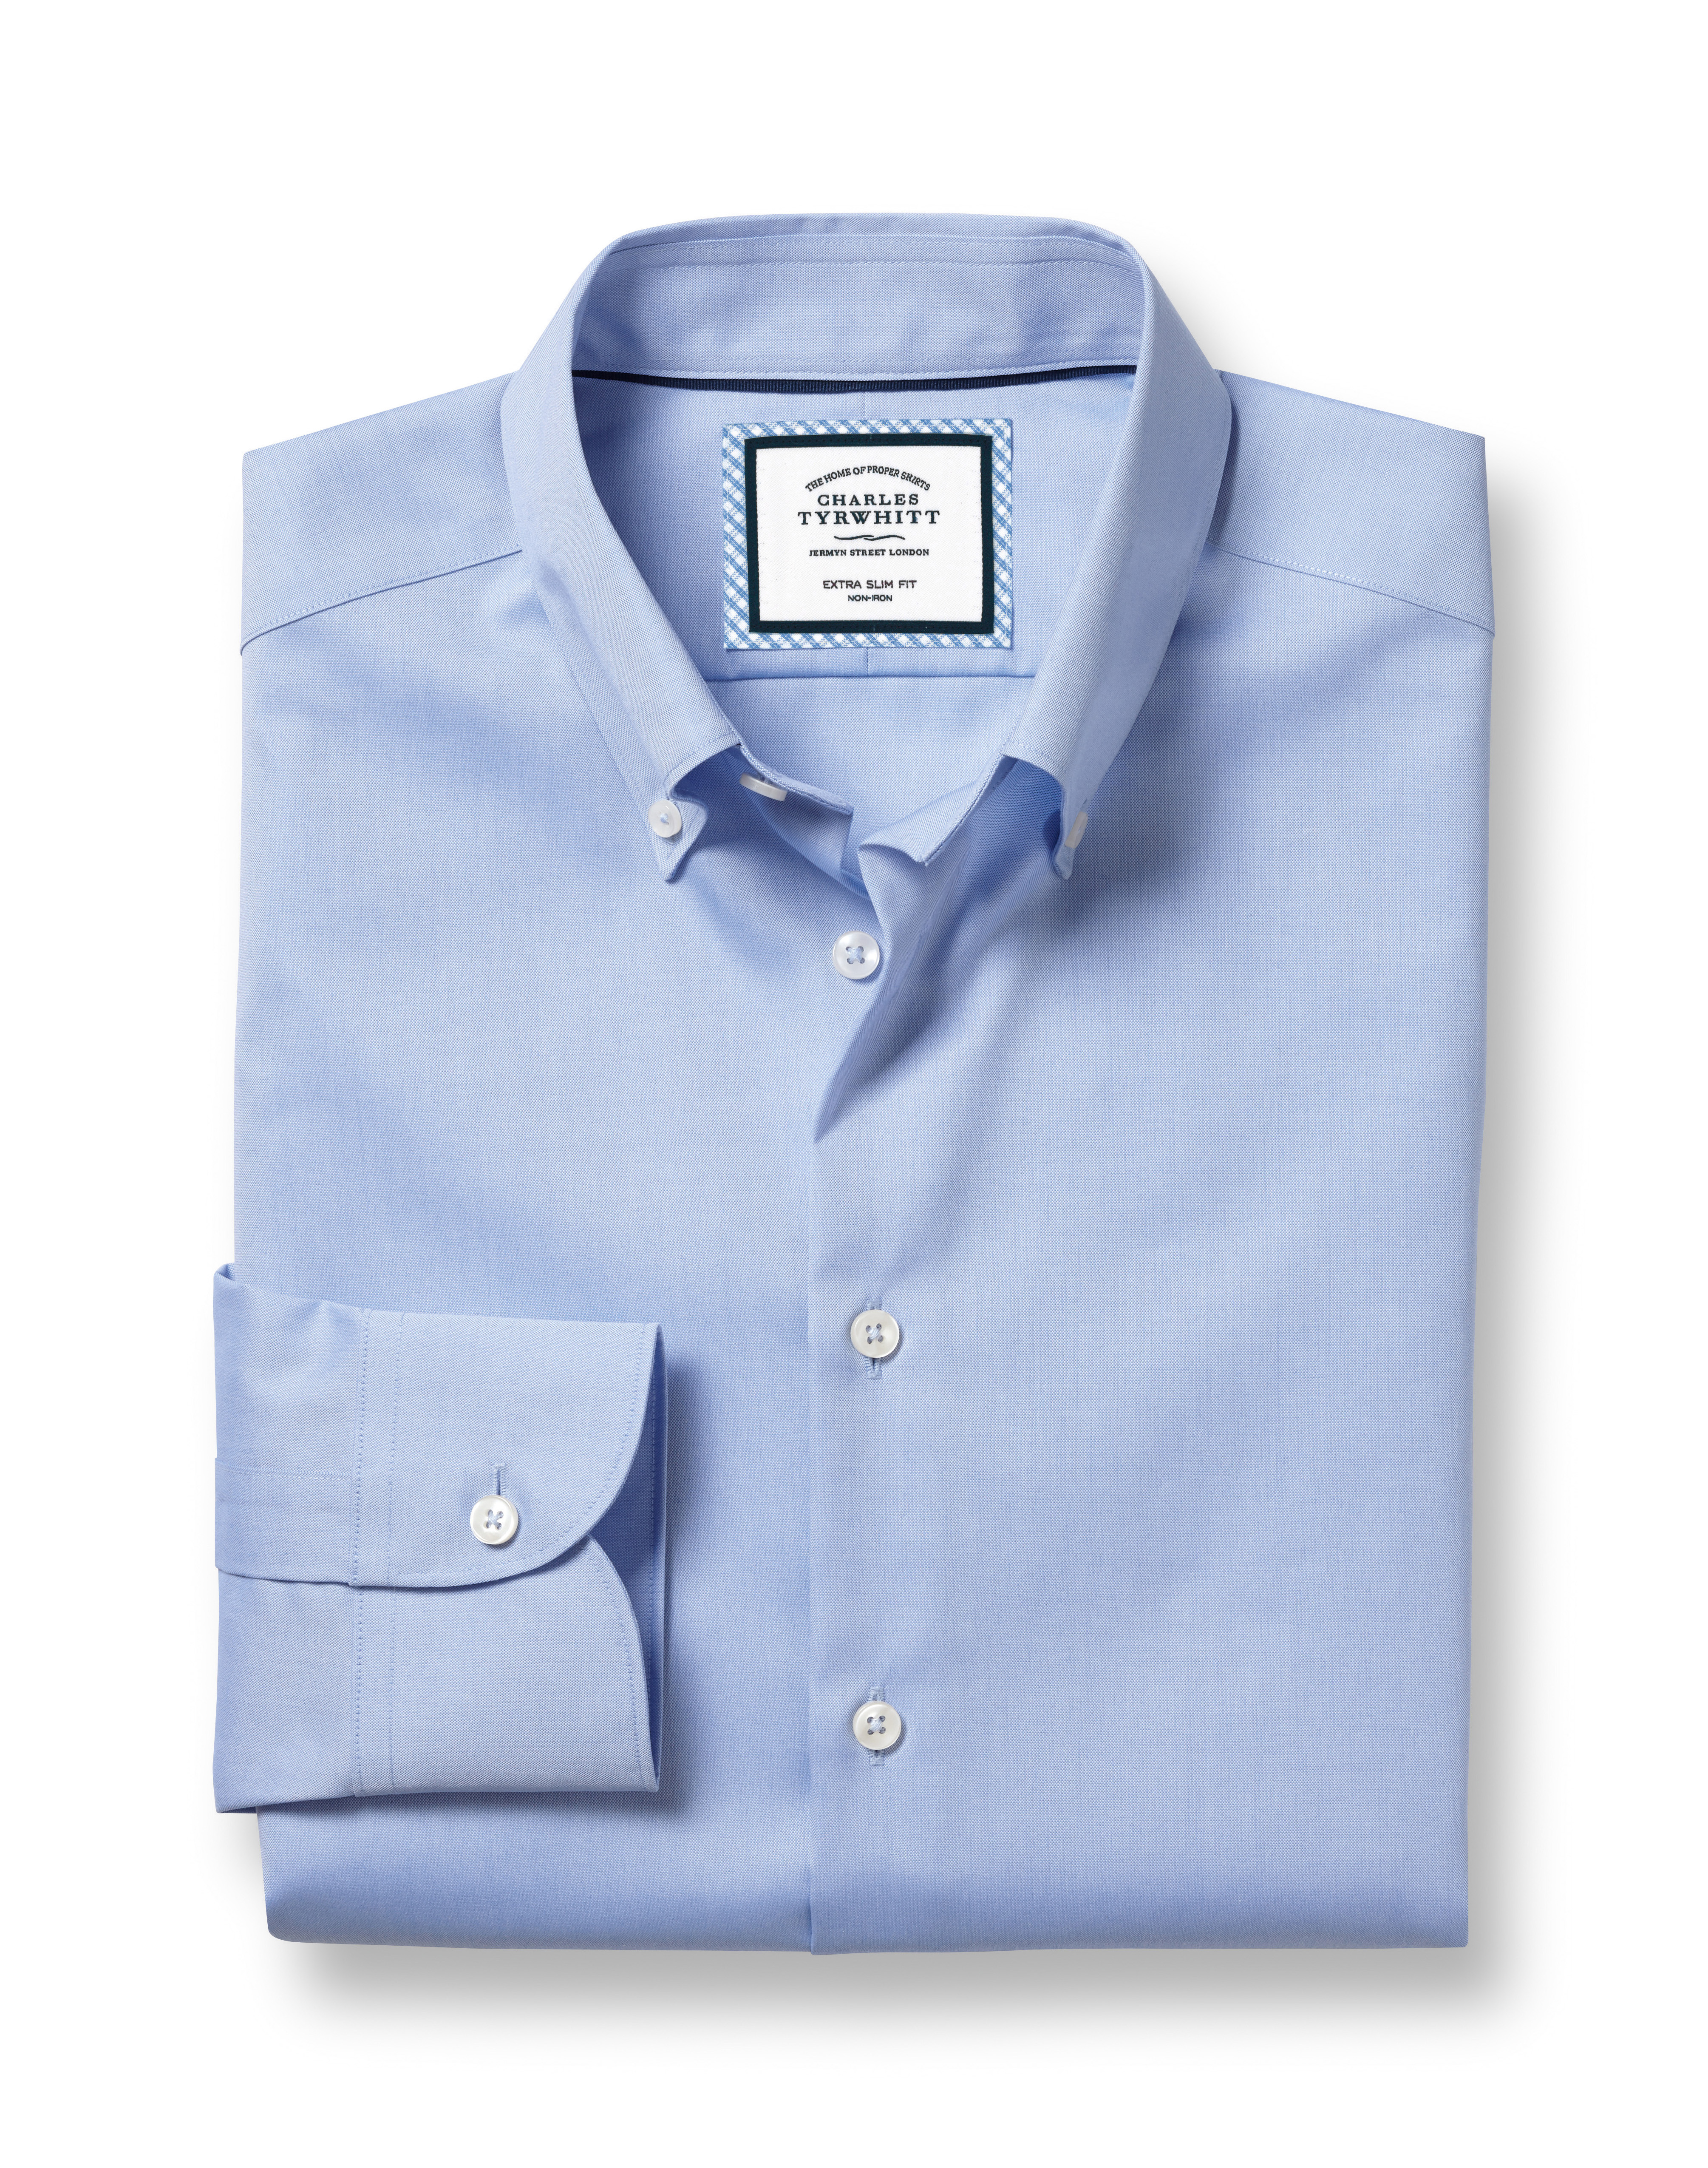 Slim Fit Button-Down Business Casual Non-Iron Sky Blue Cotton Formal Shirt Single Cuff Size 17.5/34